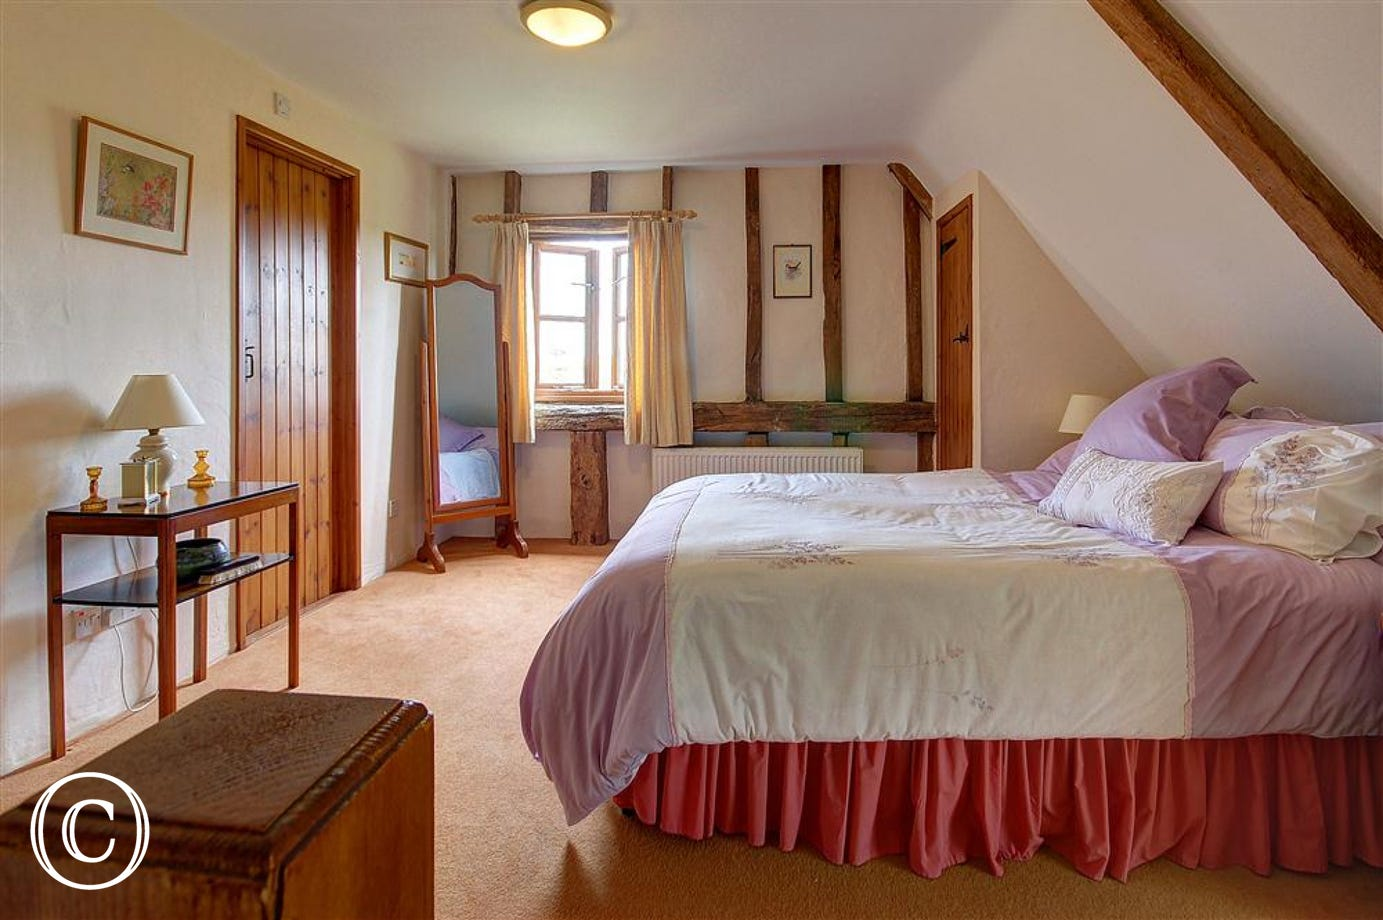 A large double bedroom with ample space for relaxation and sleeping.